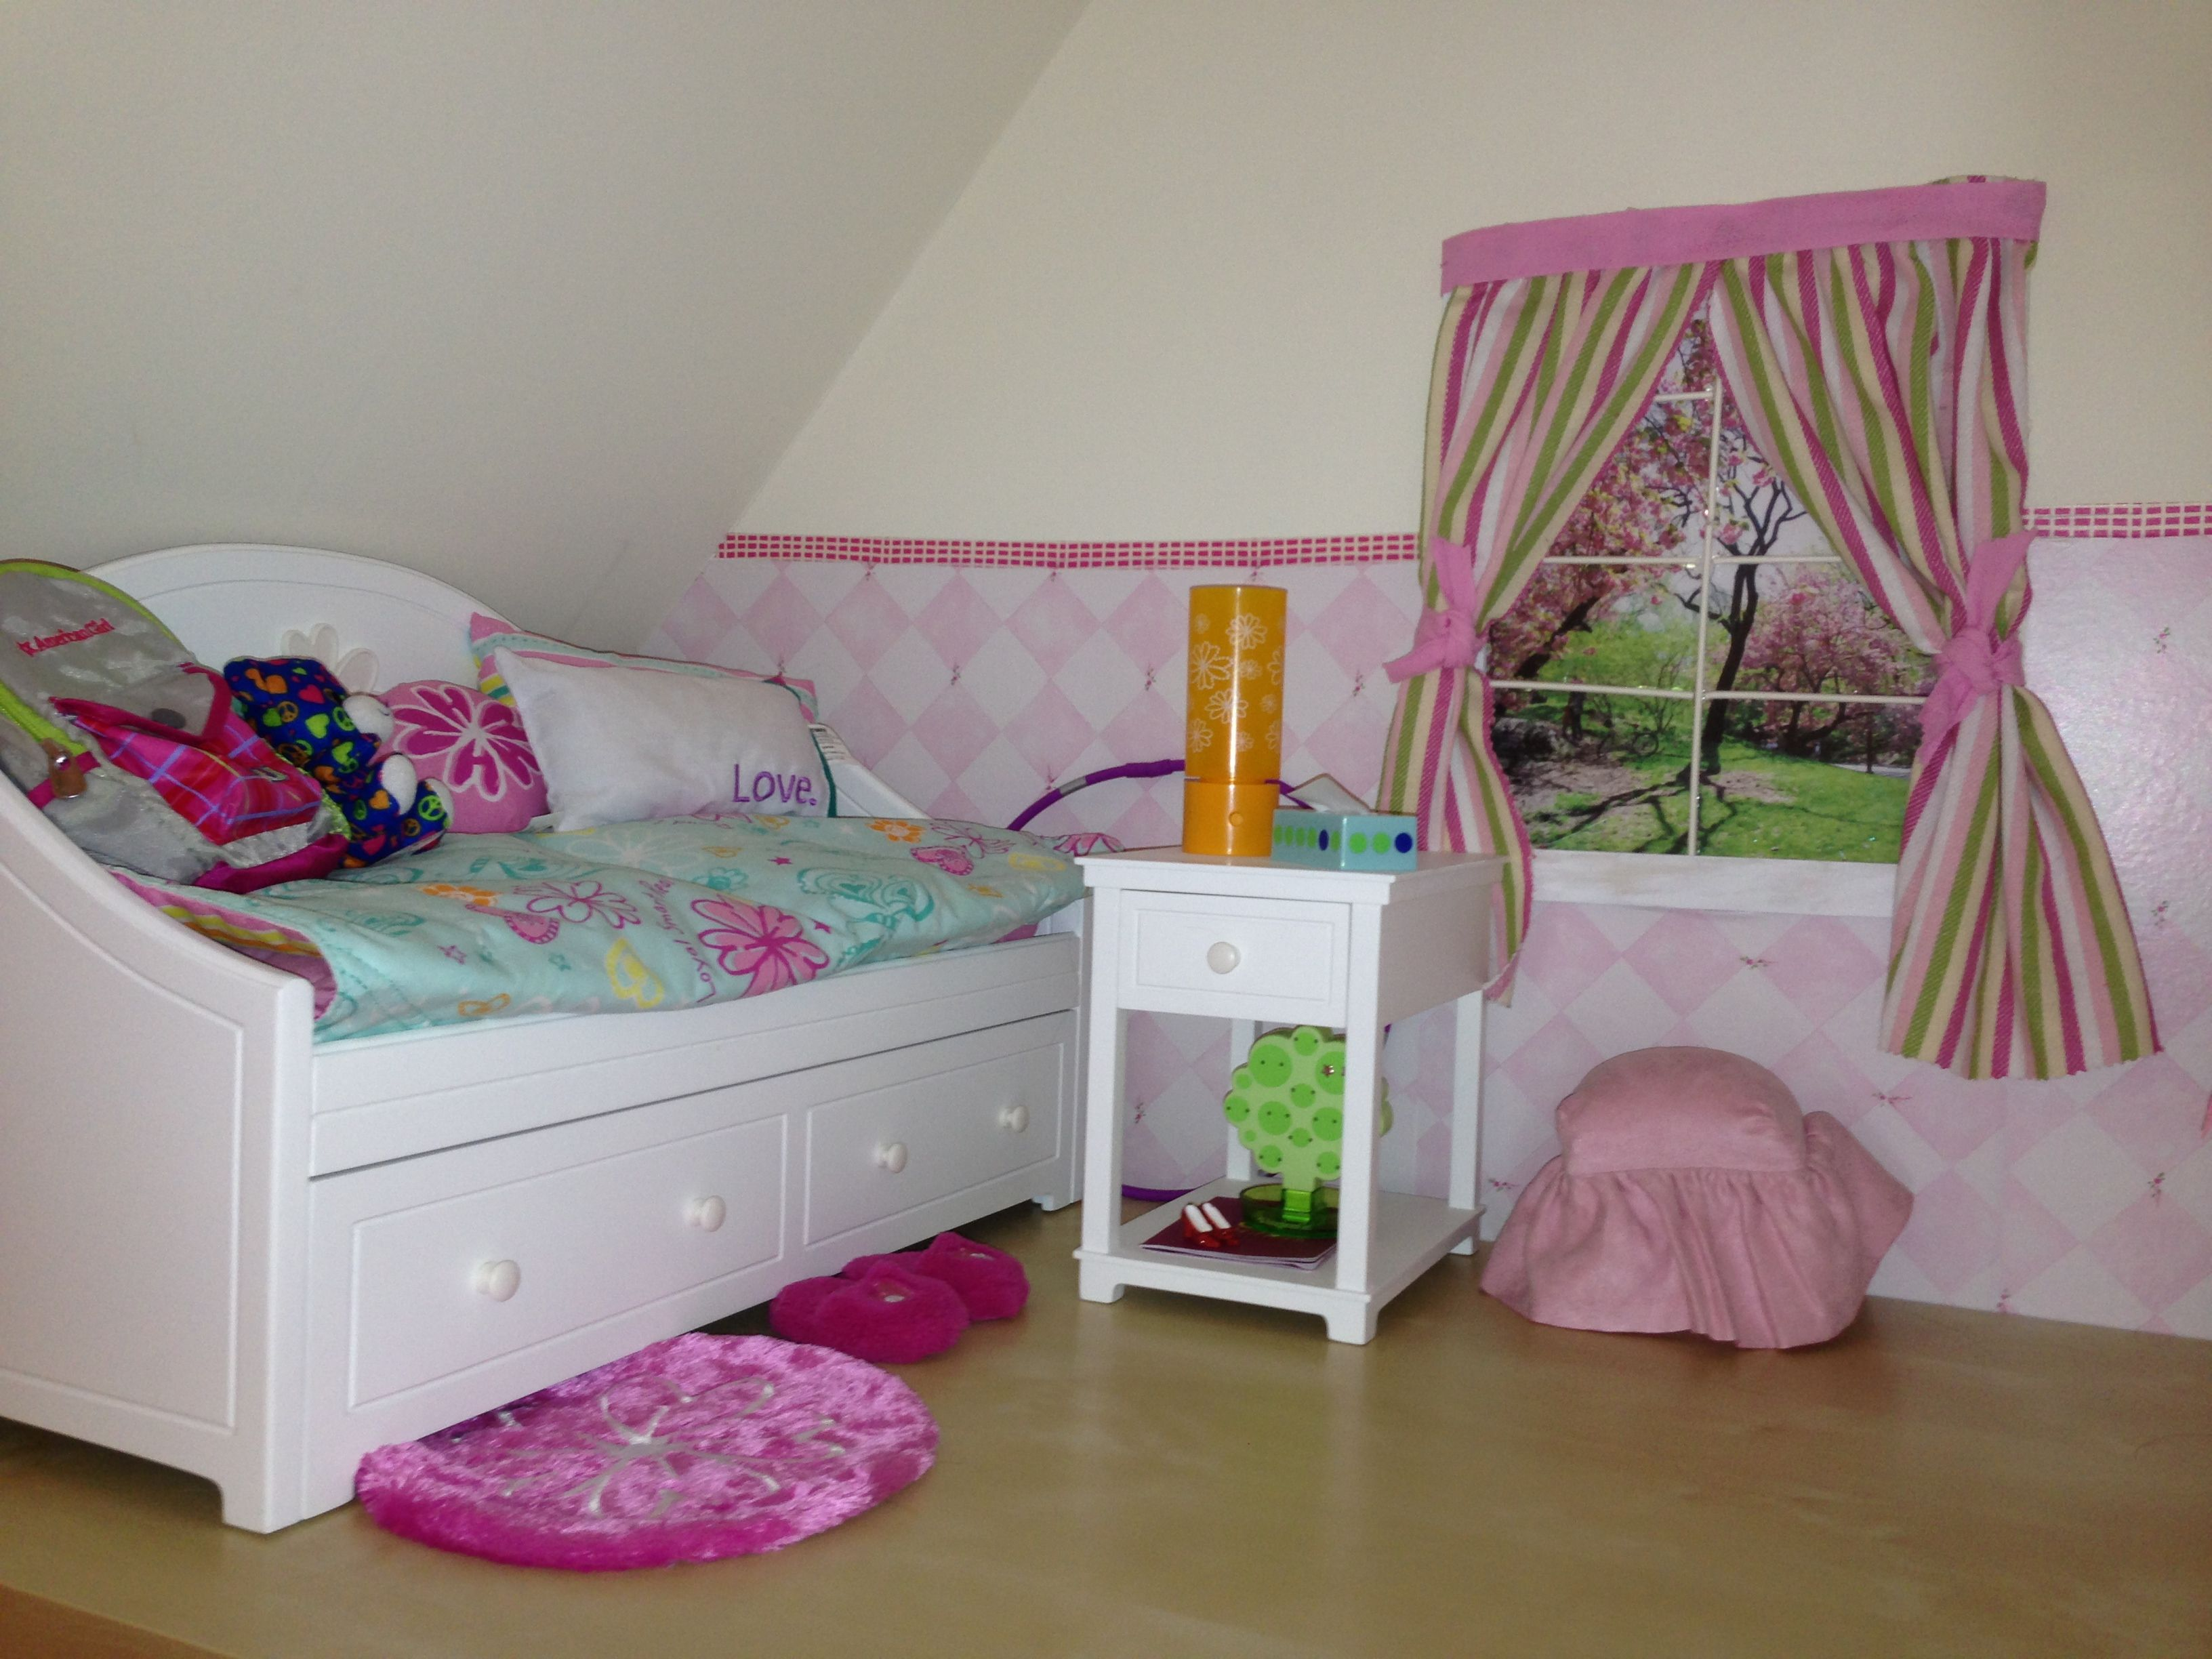 Bedroom for american girl doll american girl doll stuff - Stuff for girls rooms ...